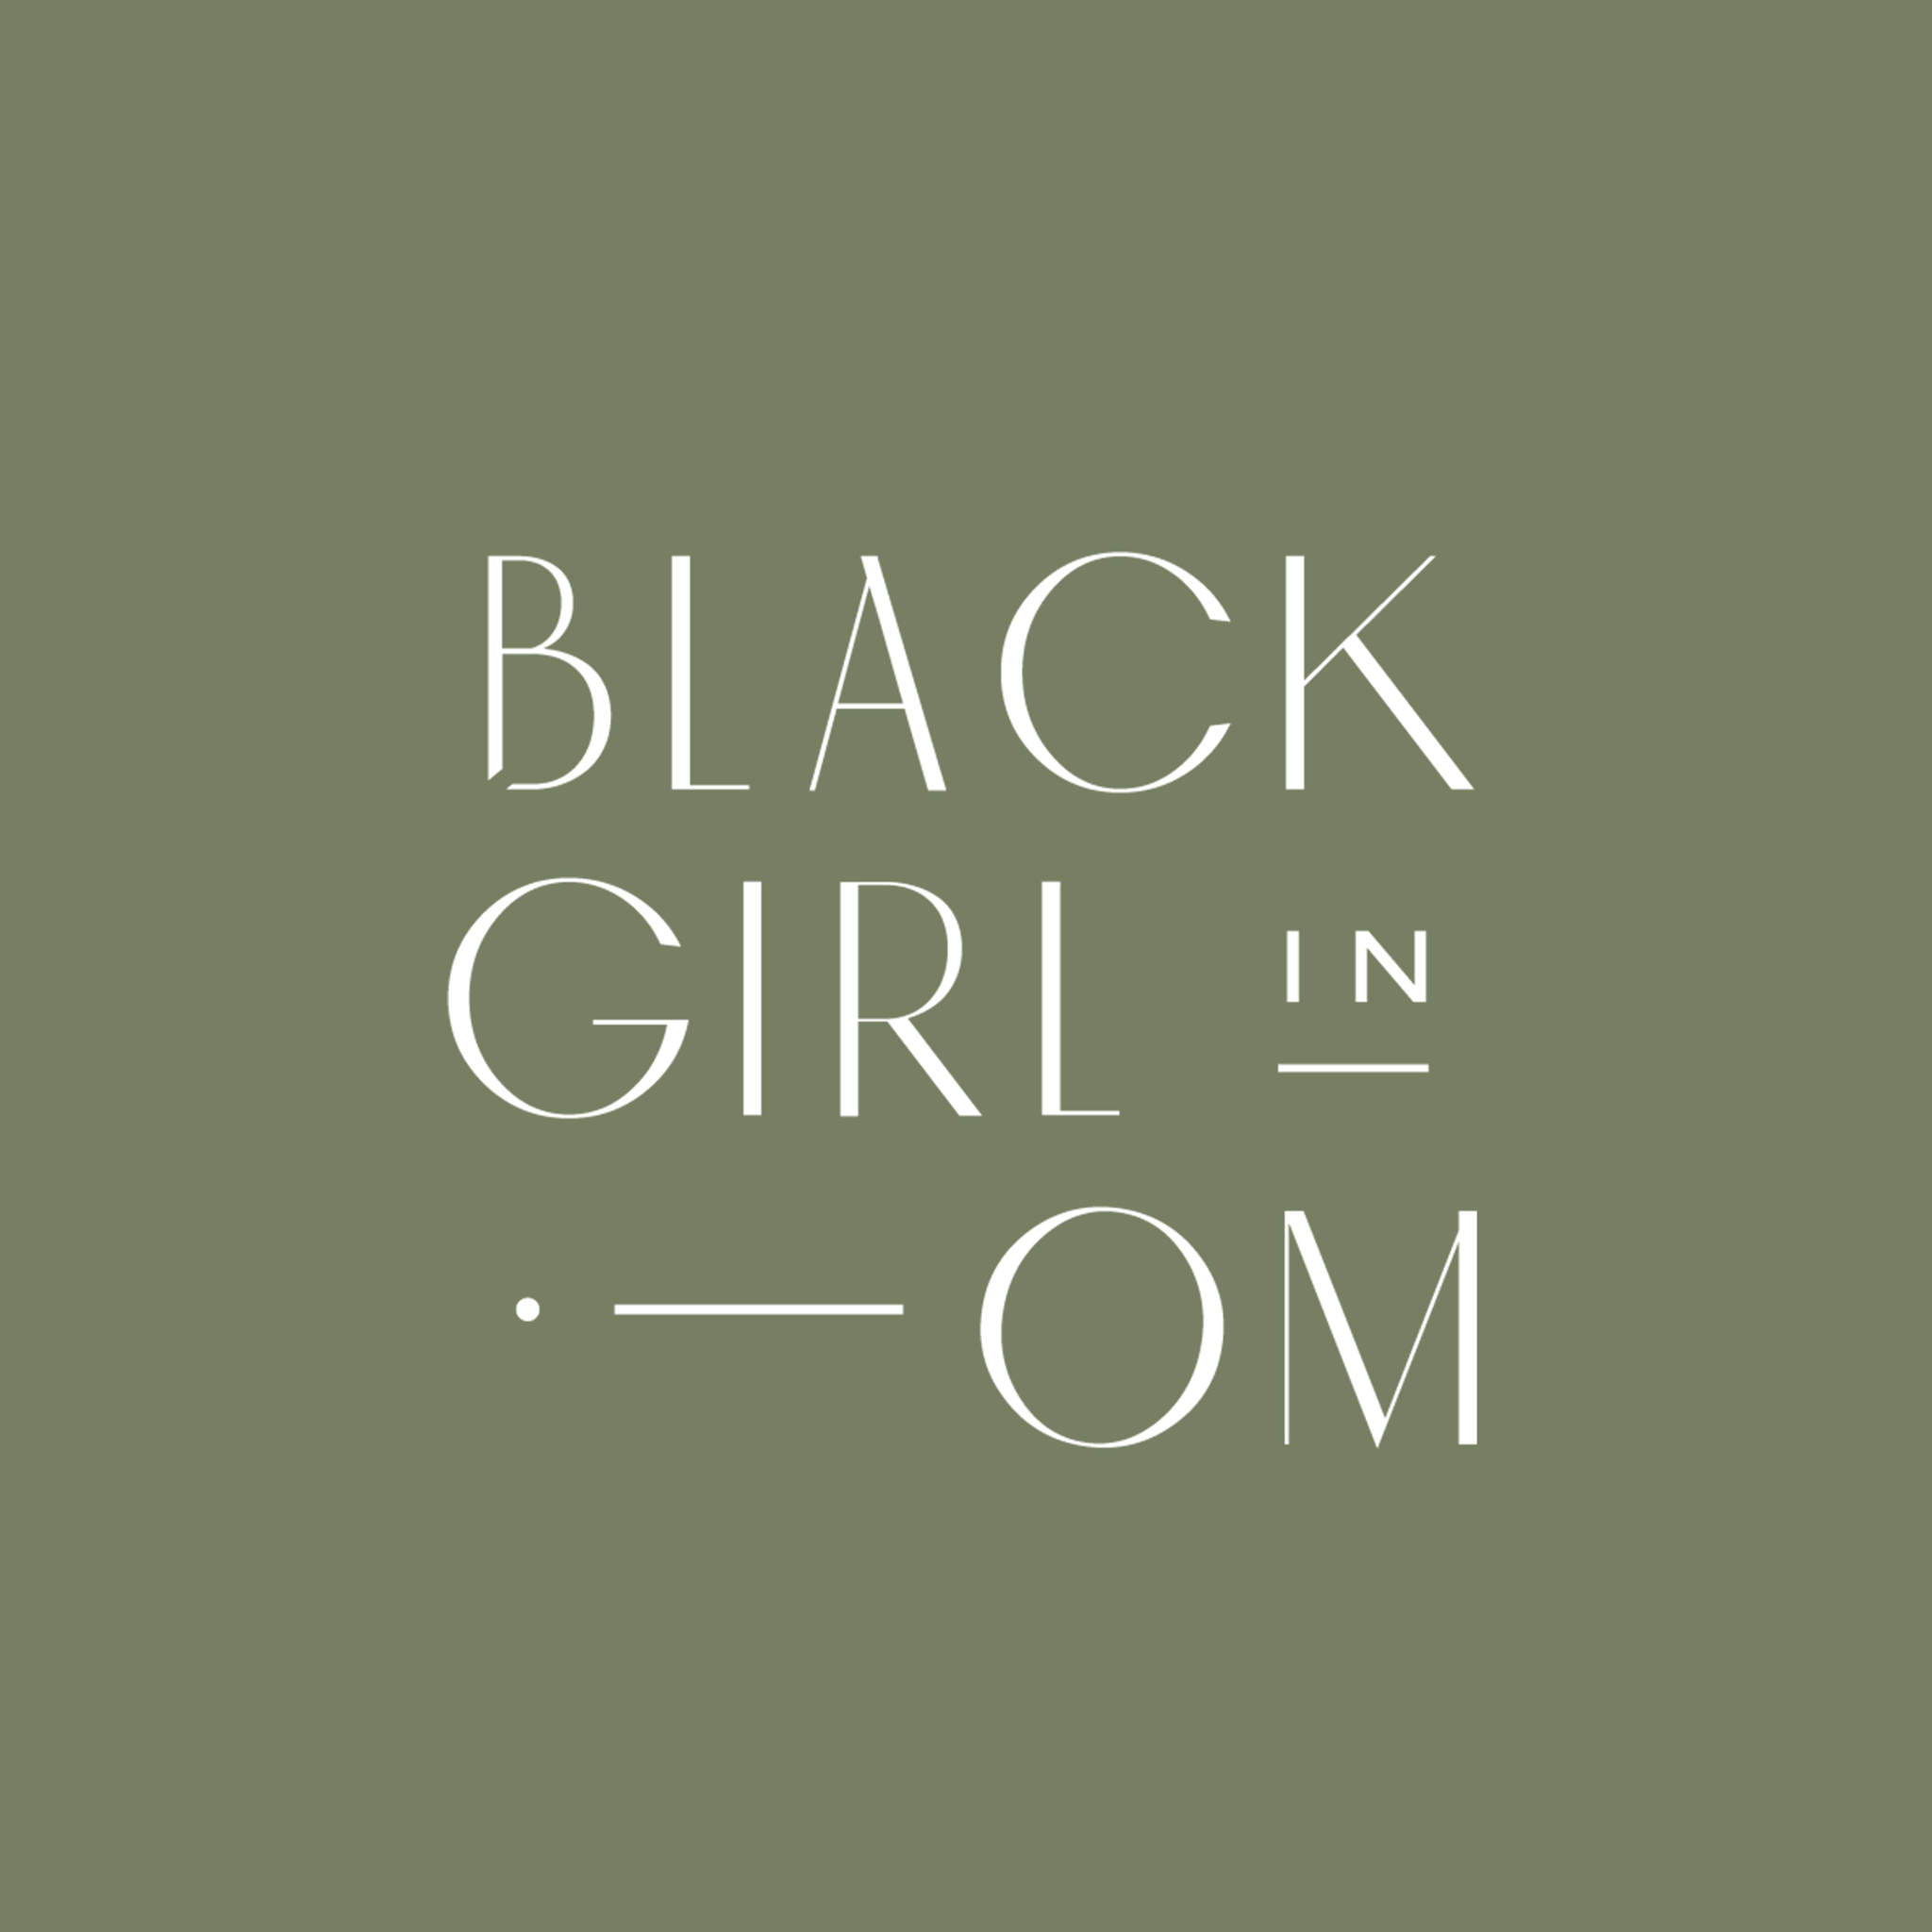 Black Girl in Om podcast logo with olive green background